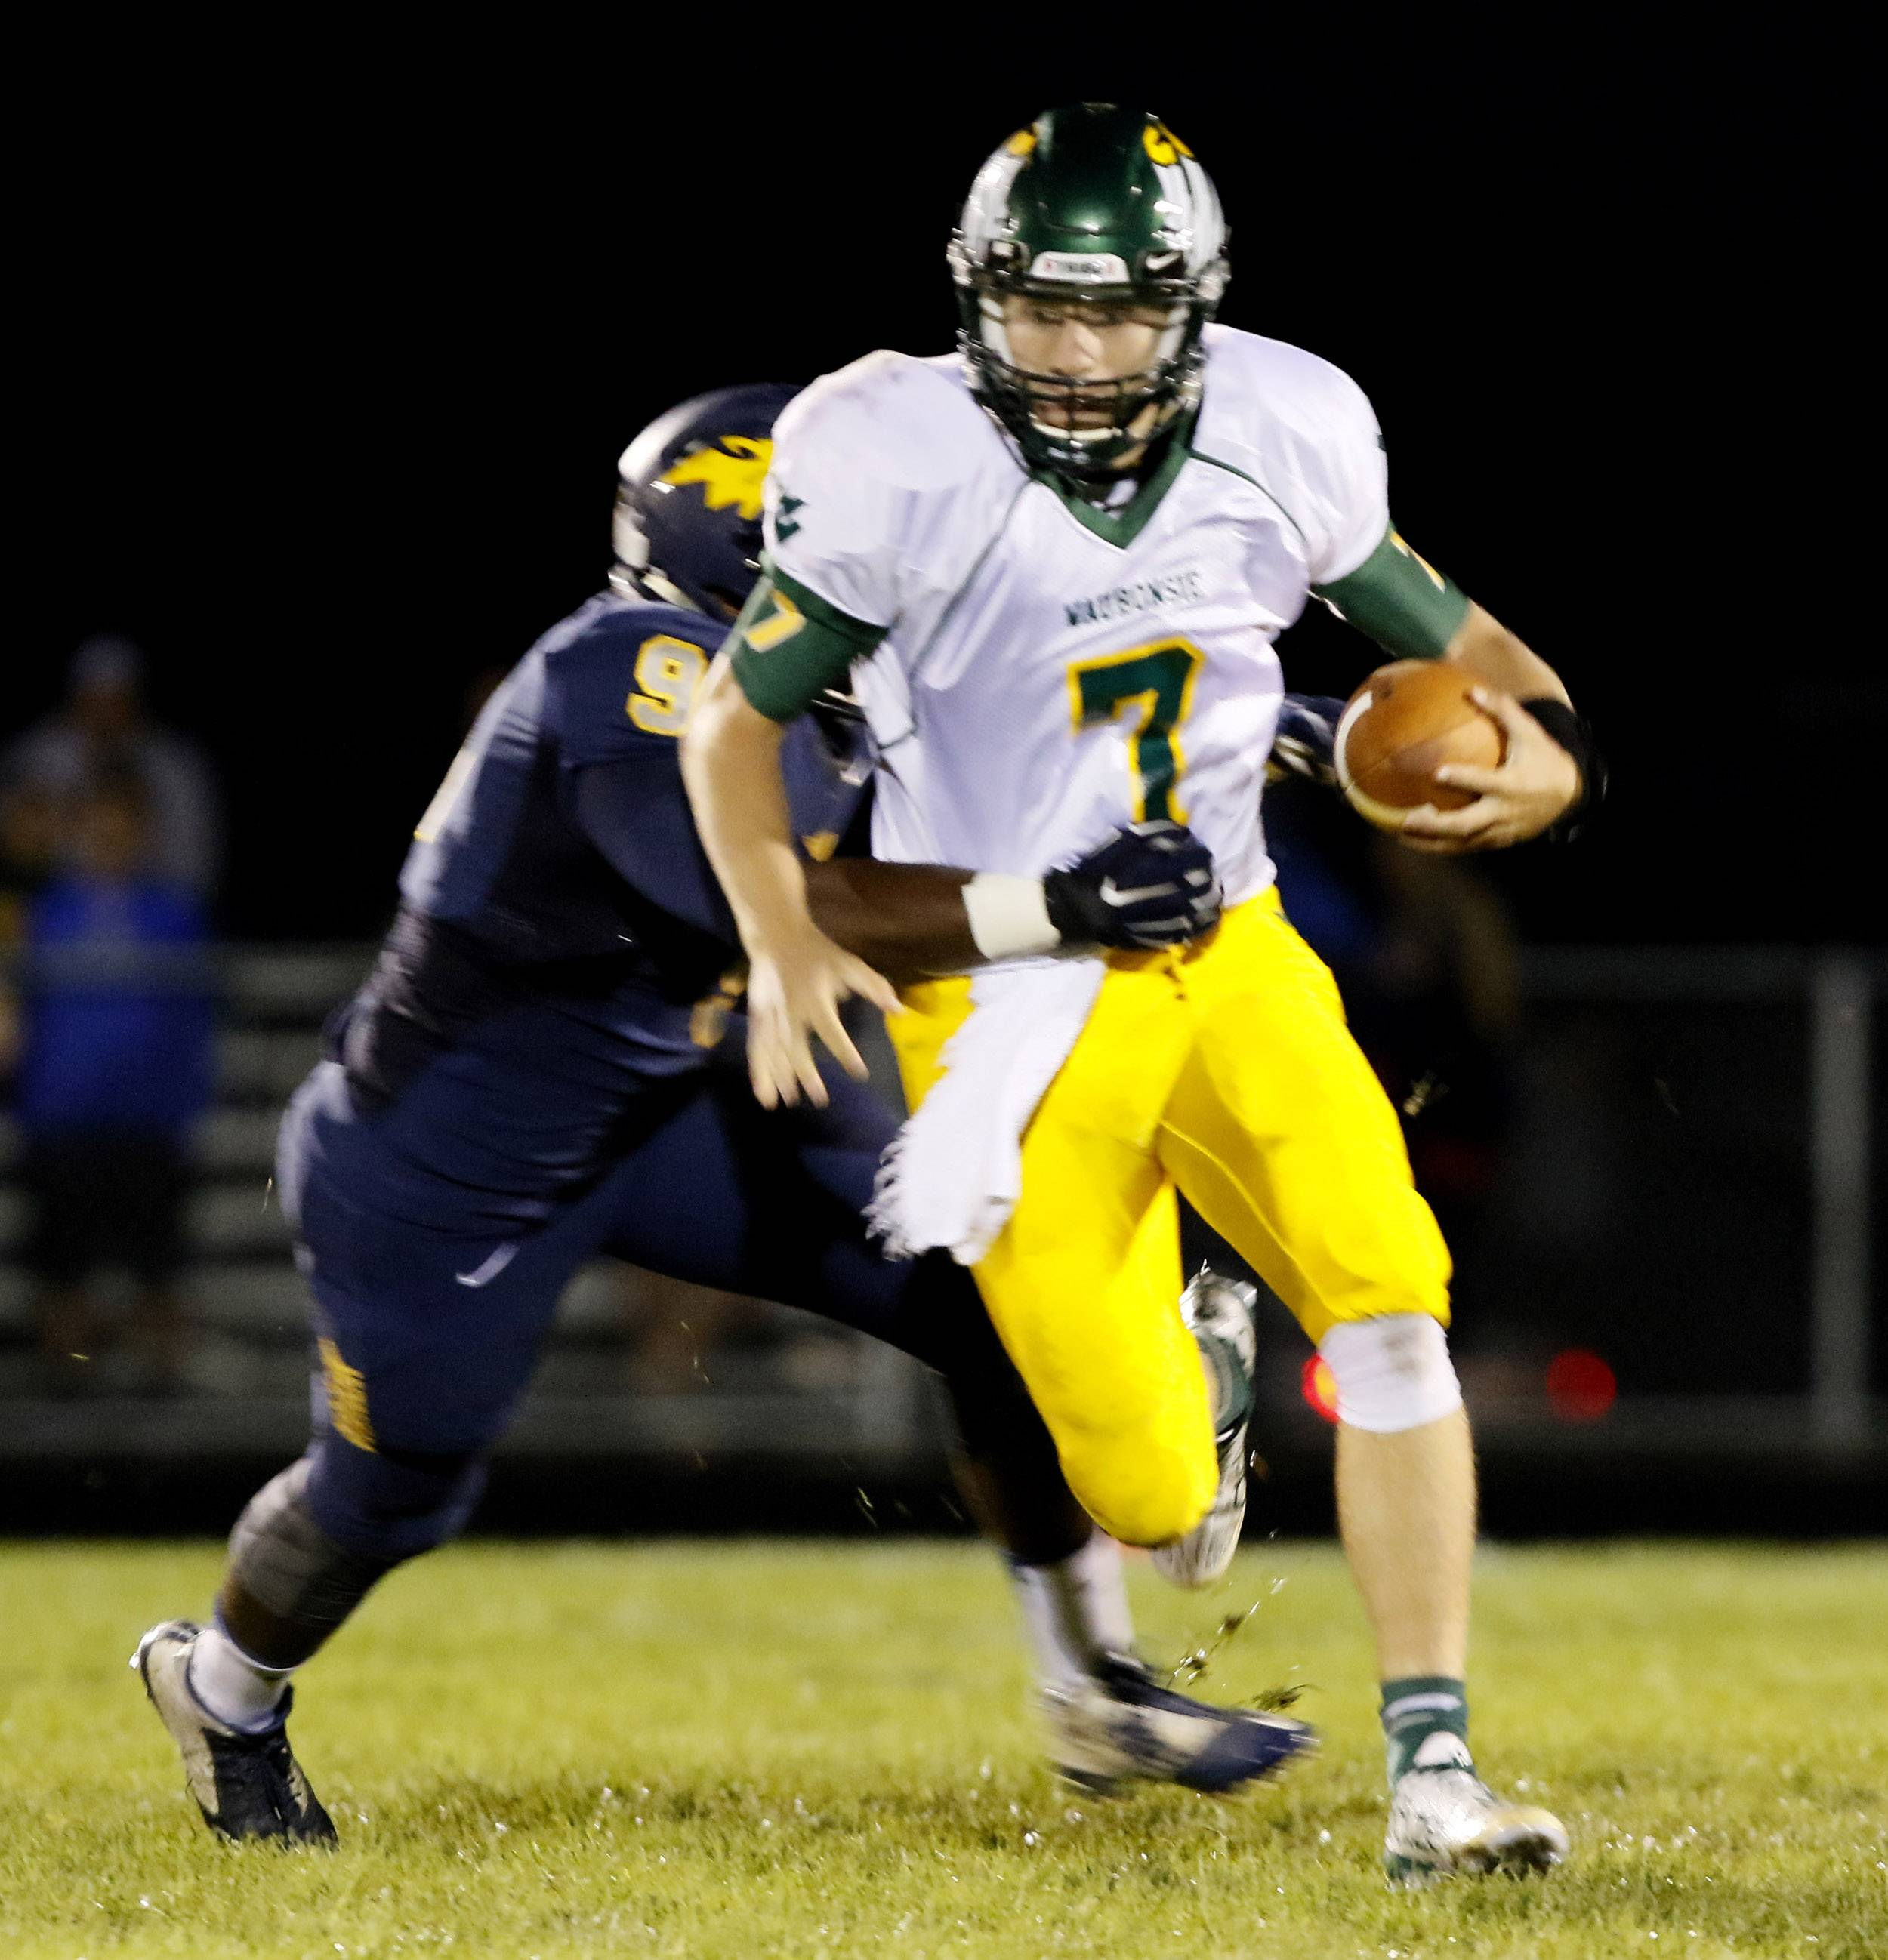 Waubonsie Valley is looking to players like senior quarterback Jack Connolly for leadership.